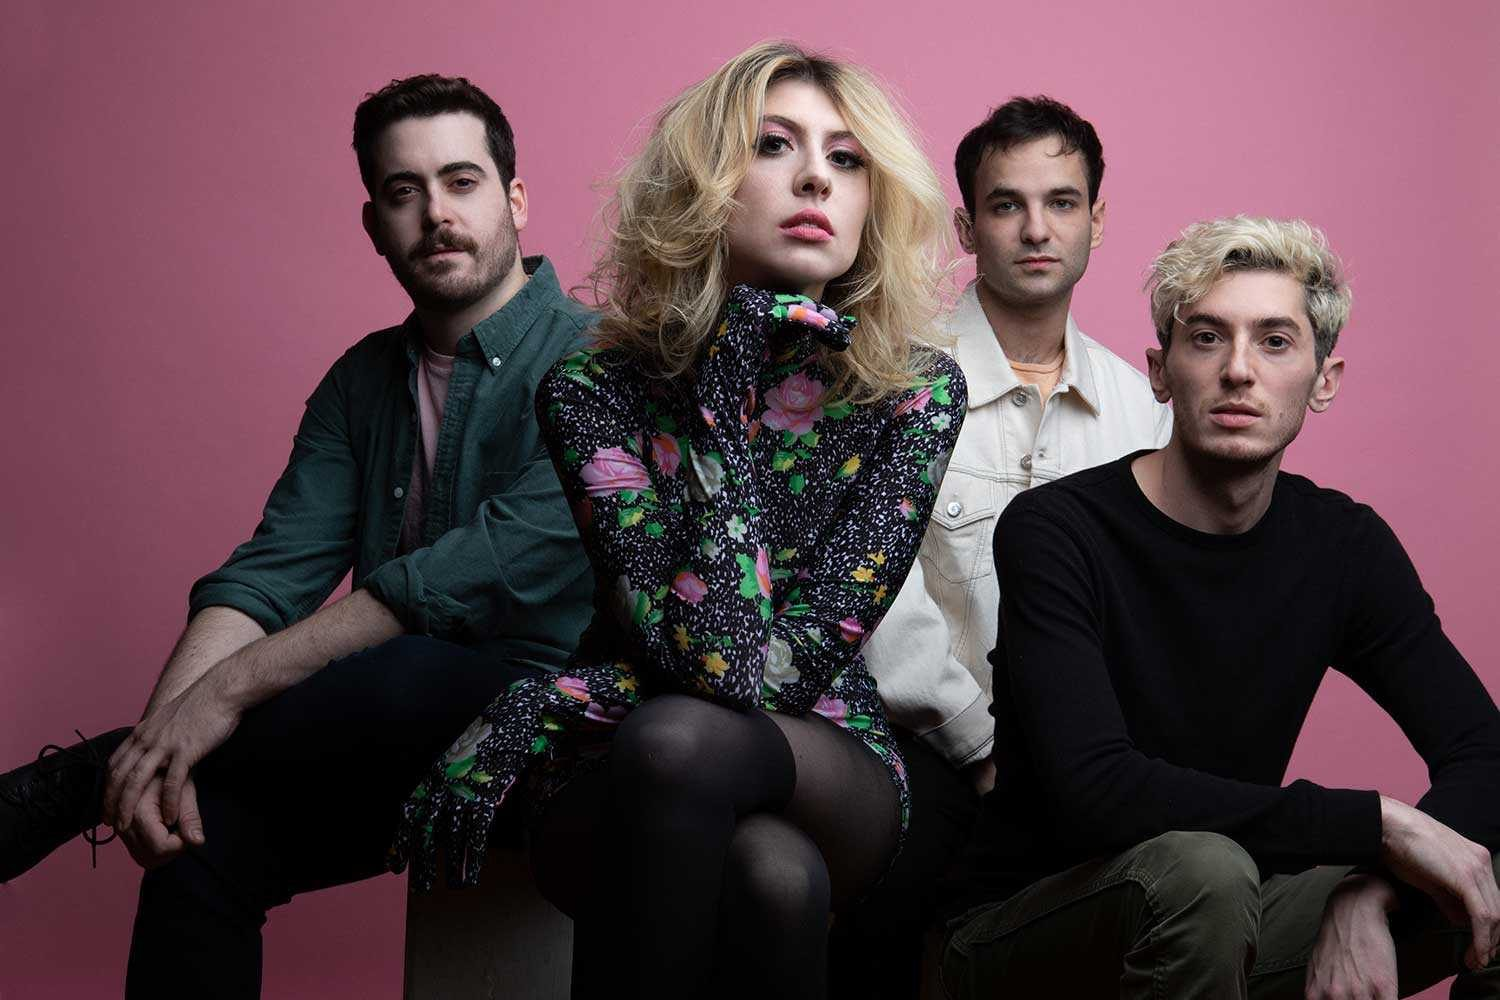 Charly Bliss are back with a new album arriving in May